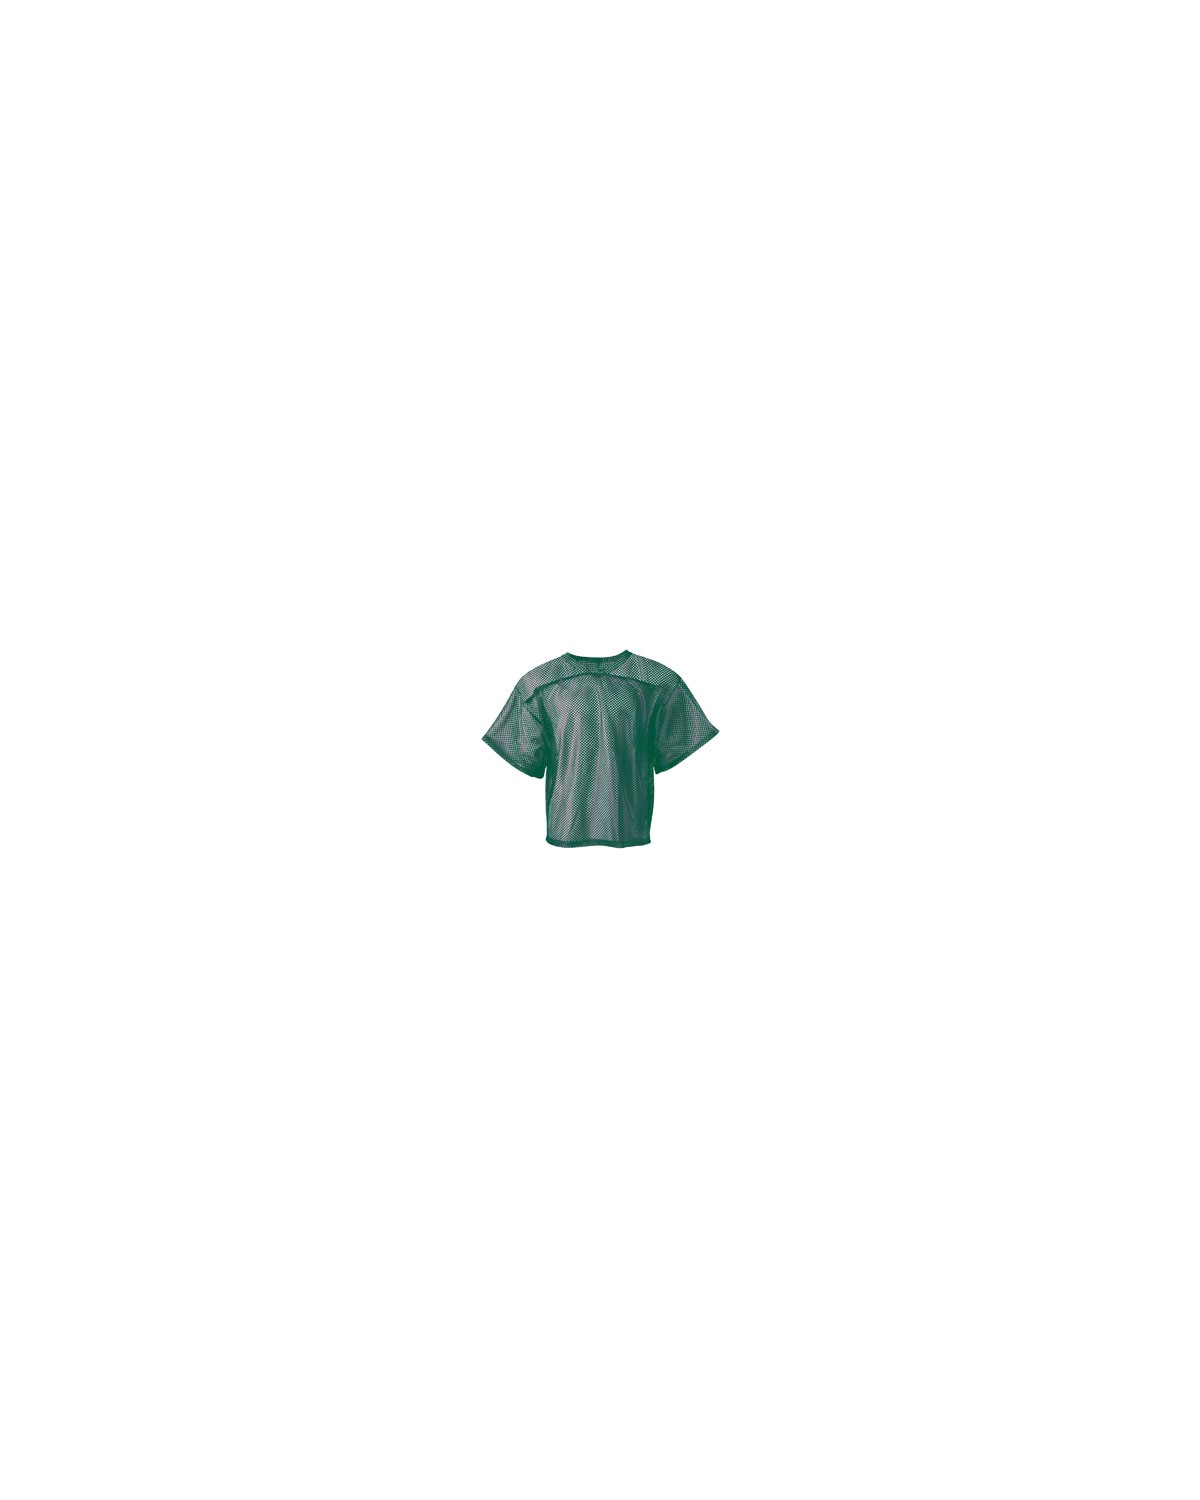 N4190 A4 Drop Ship FOREST GREEN